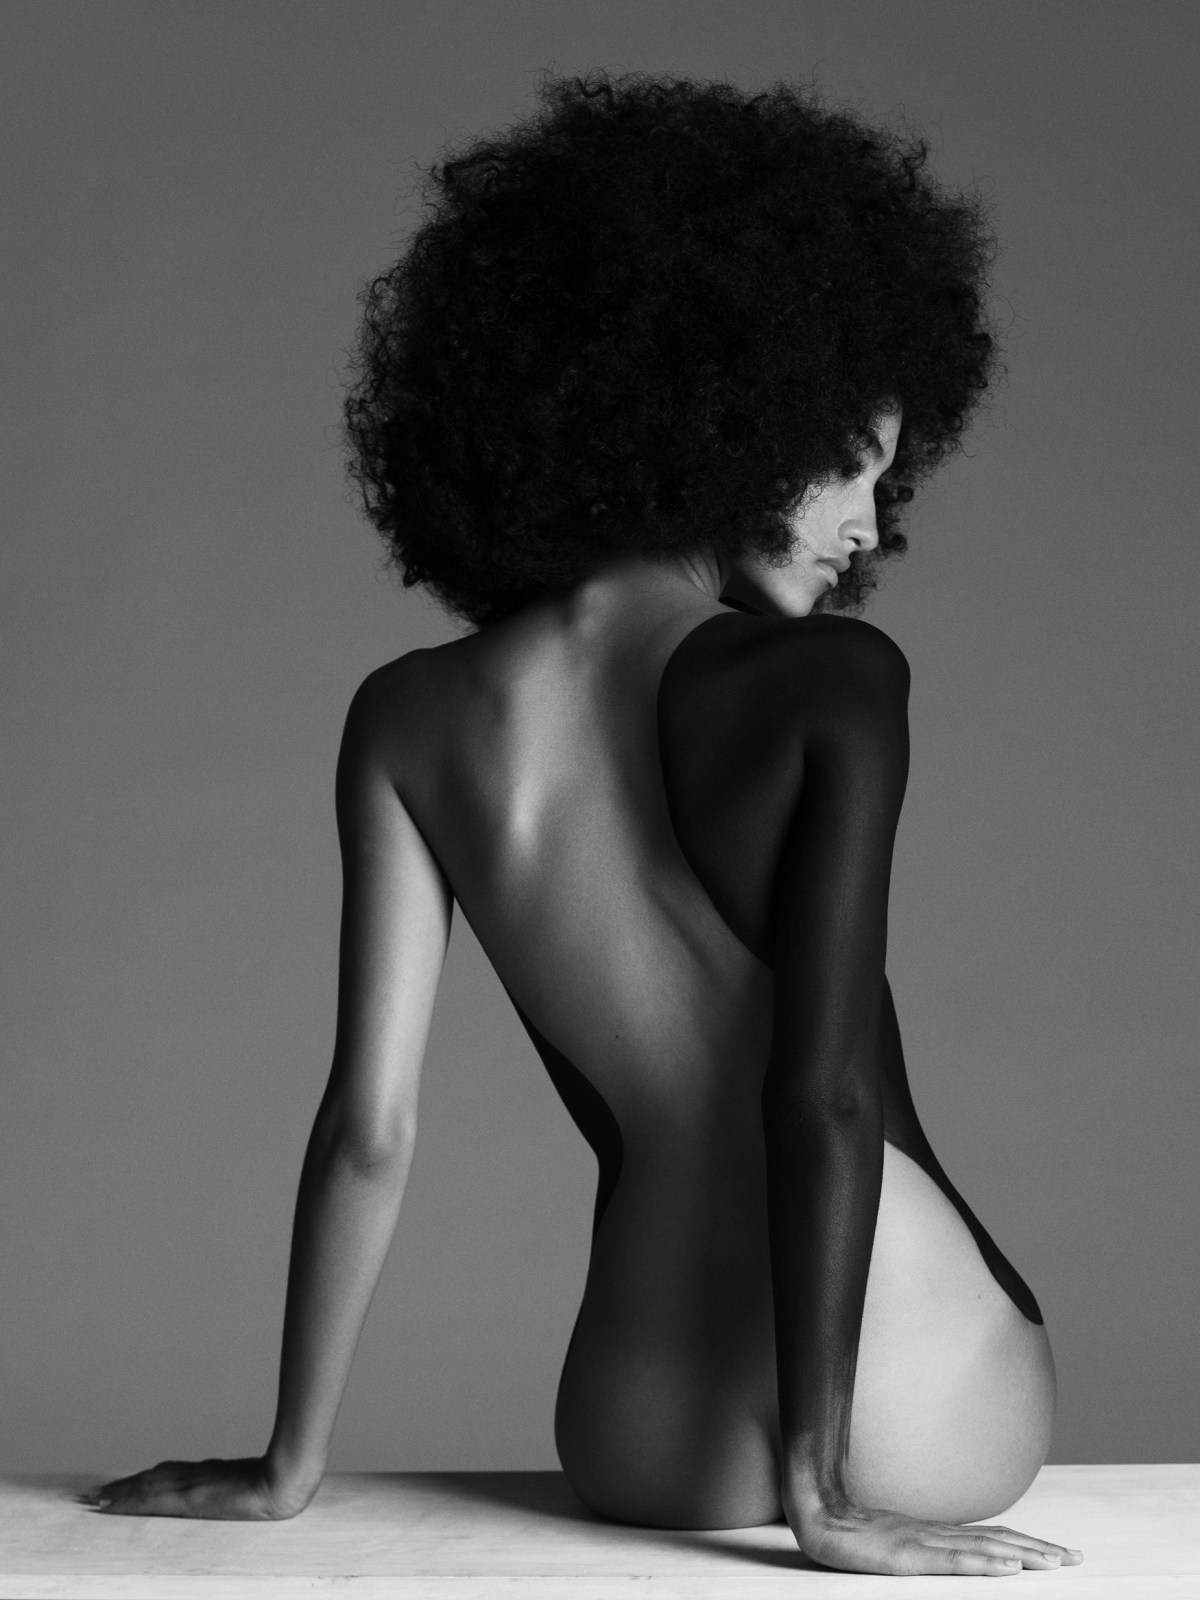 Melodie Vaxelaire by Paul Morel for Slimi Magazine